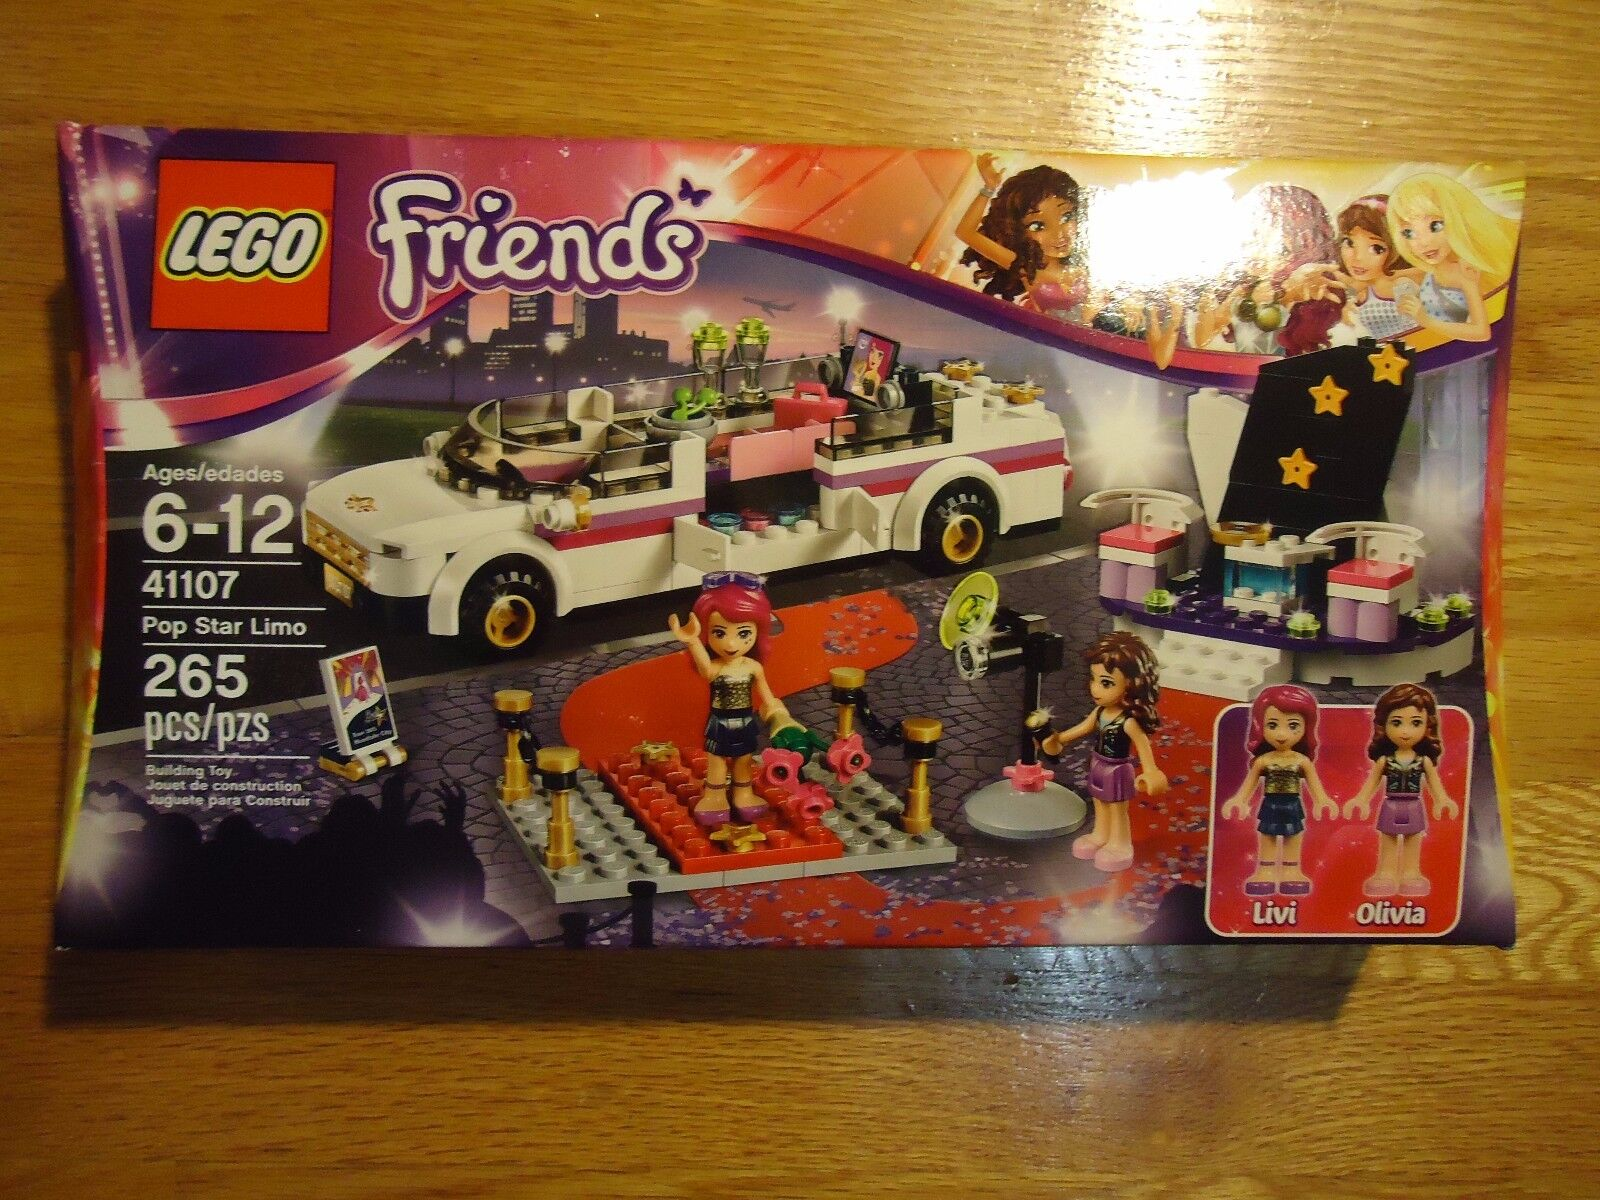 LEGO 41107 FRIENDS - POP STAR LIMO NIB retirosso